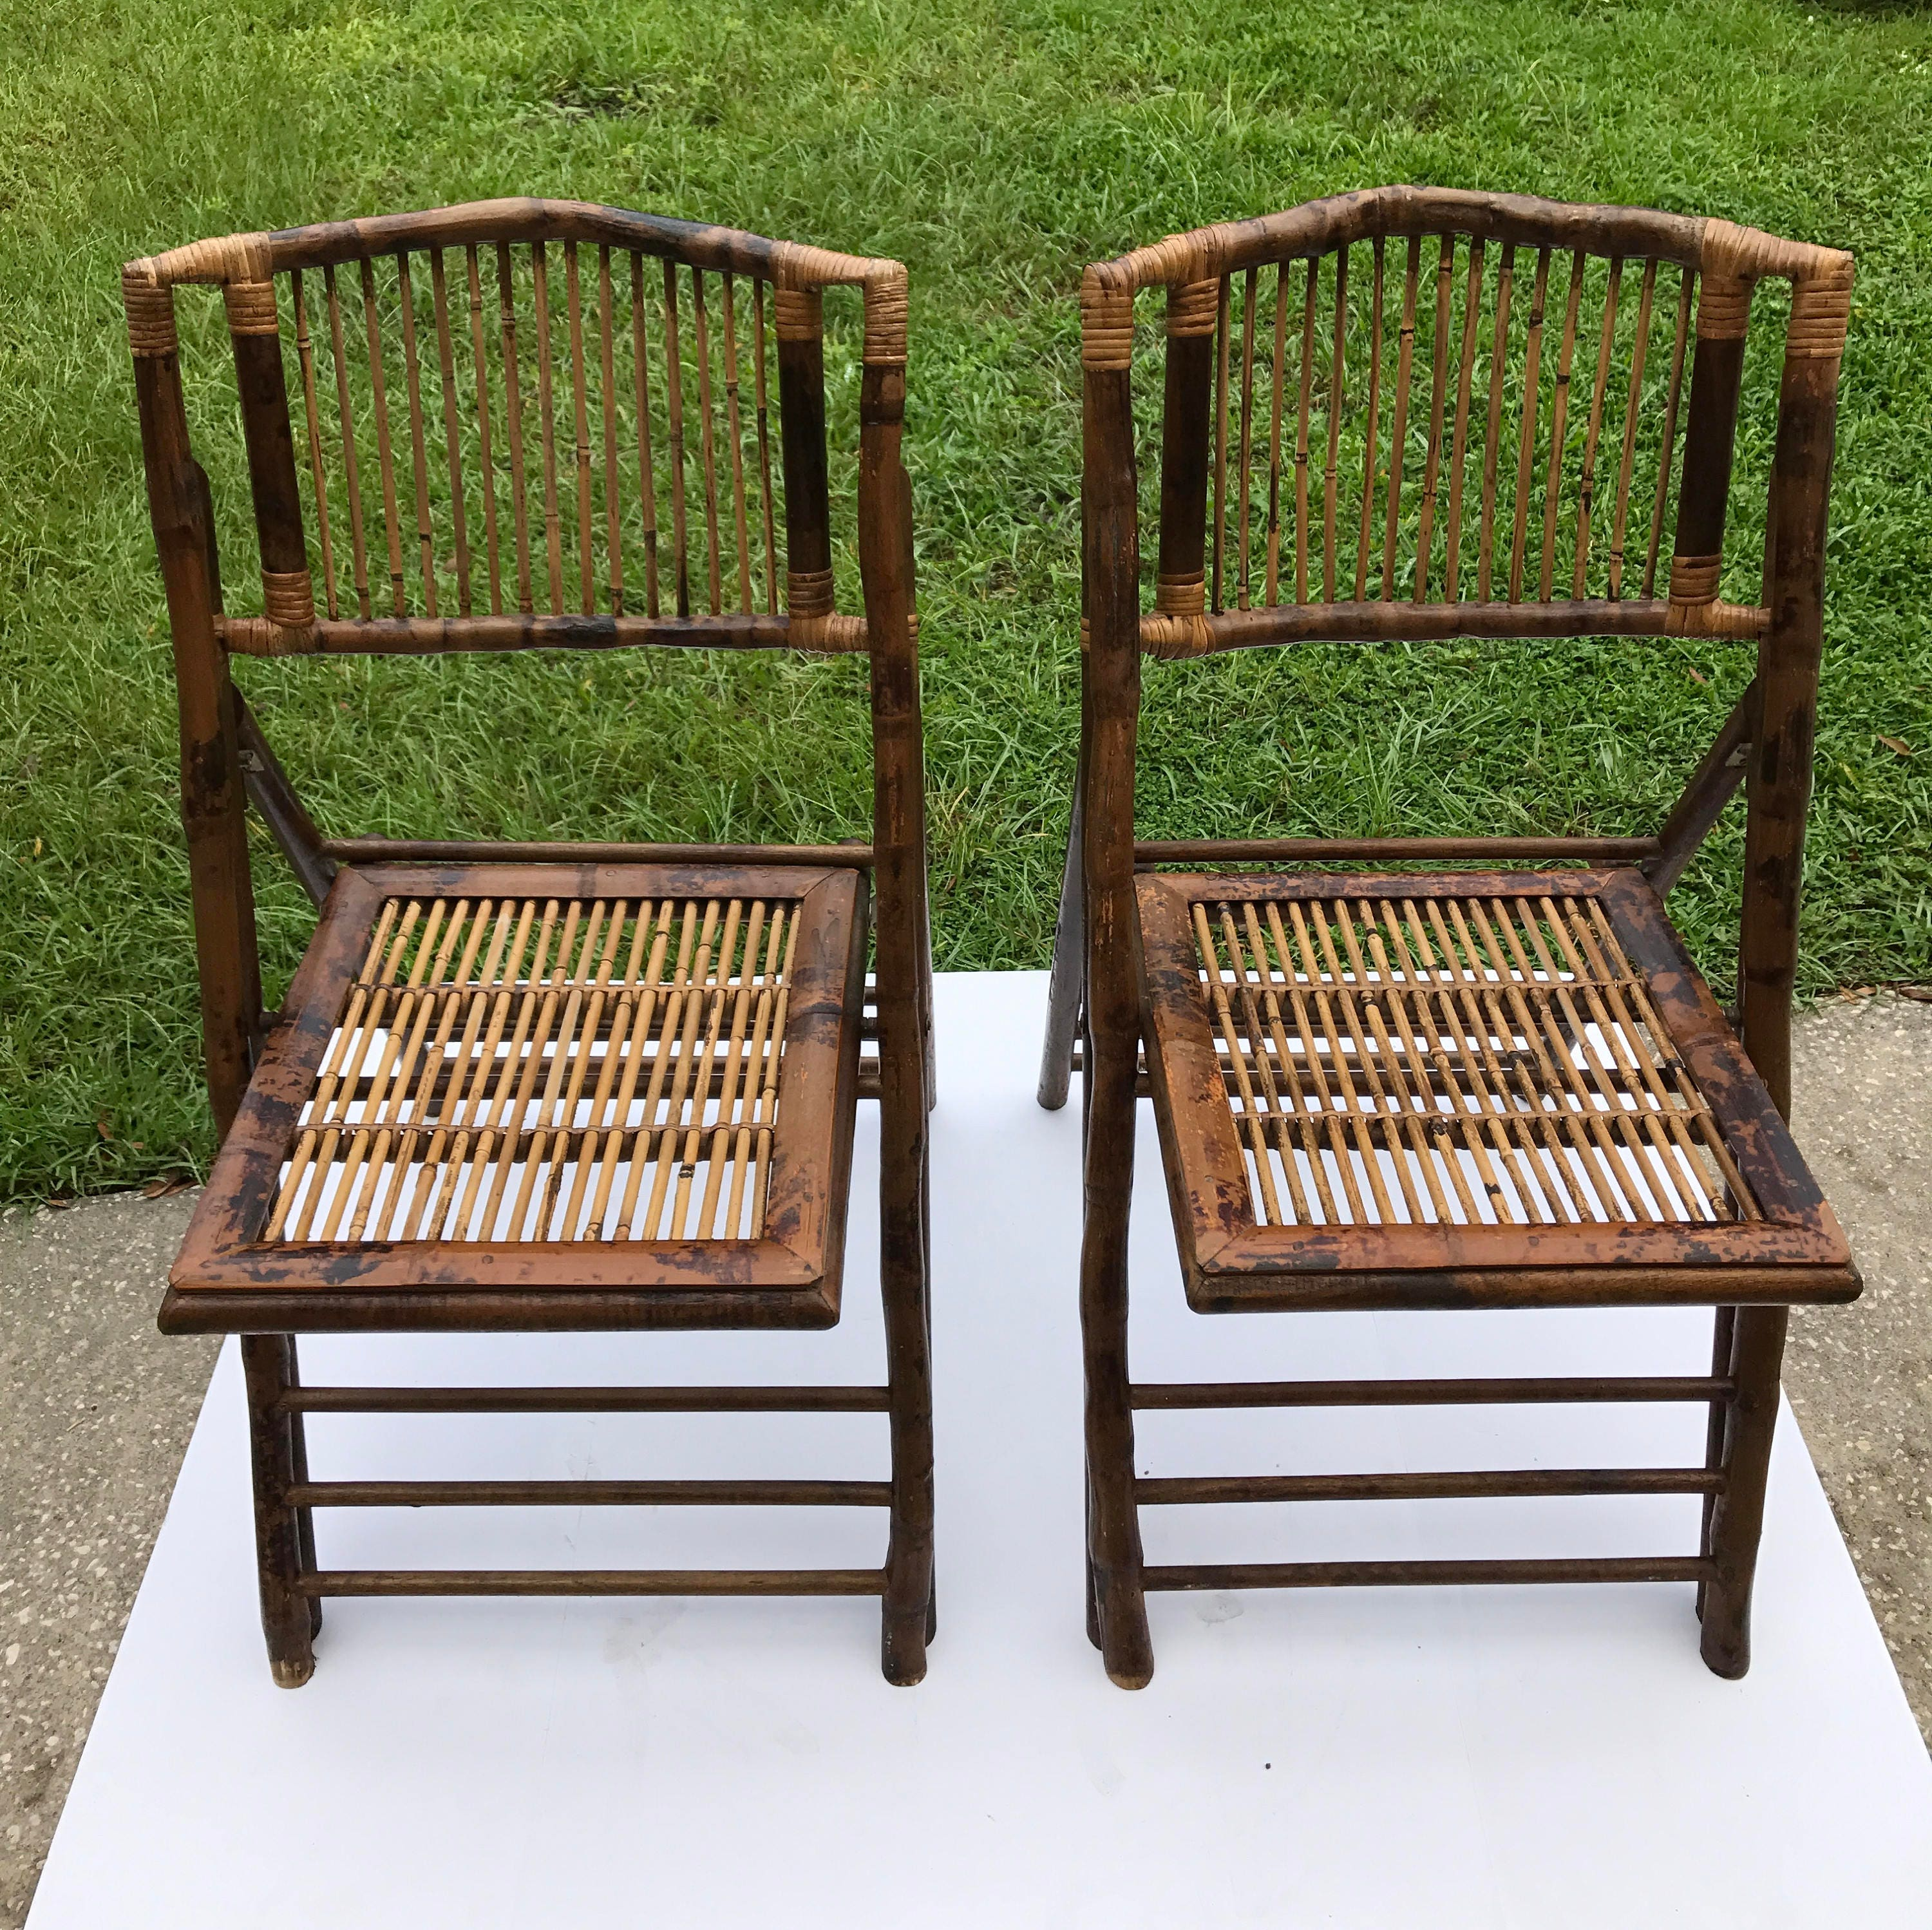 2x Vintage Bamboo Folding Chairs – Classics Life